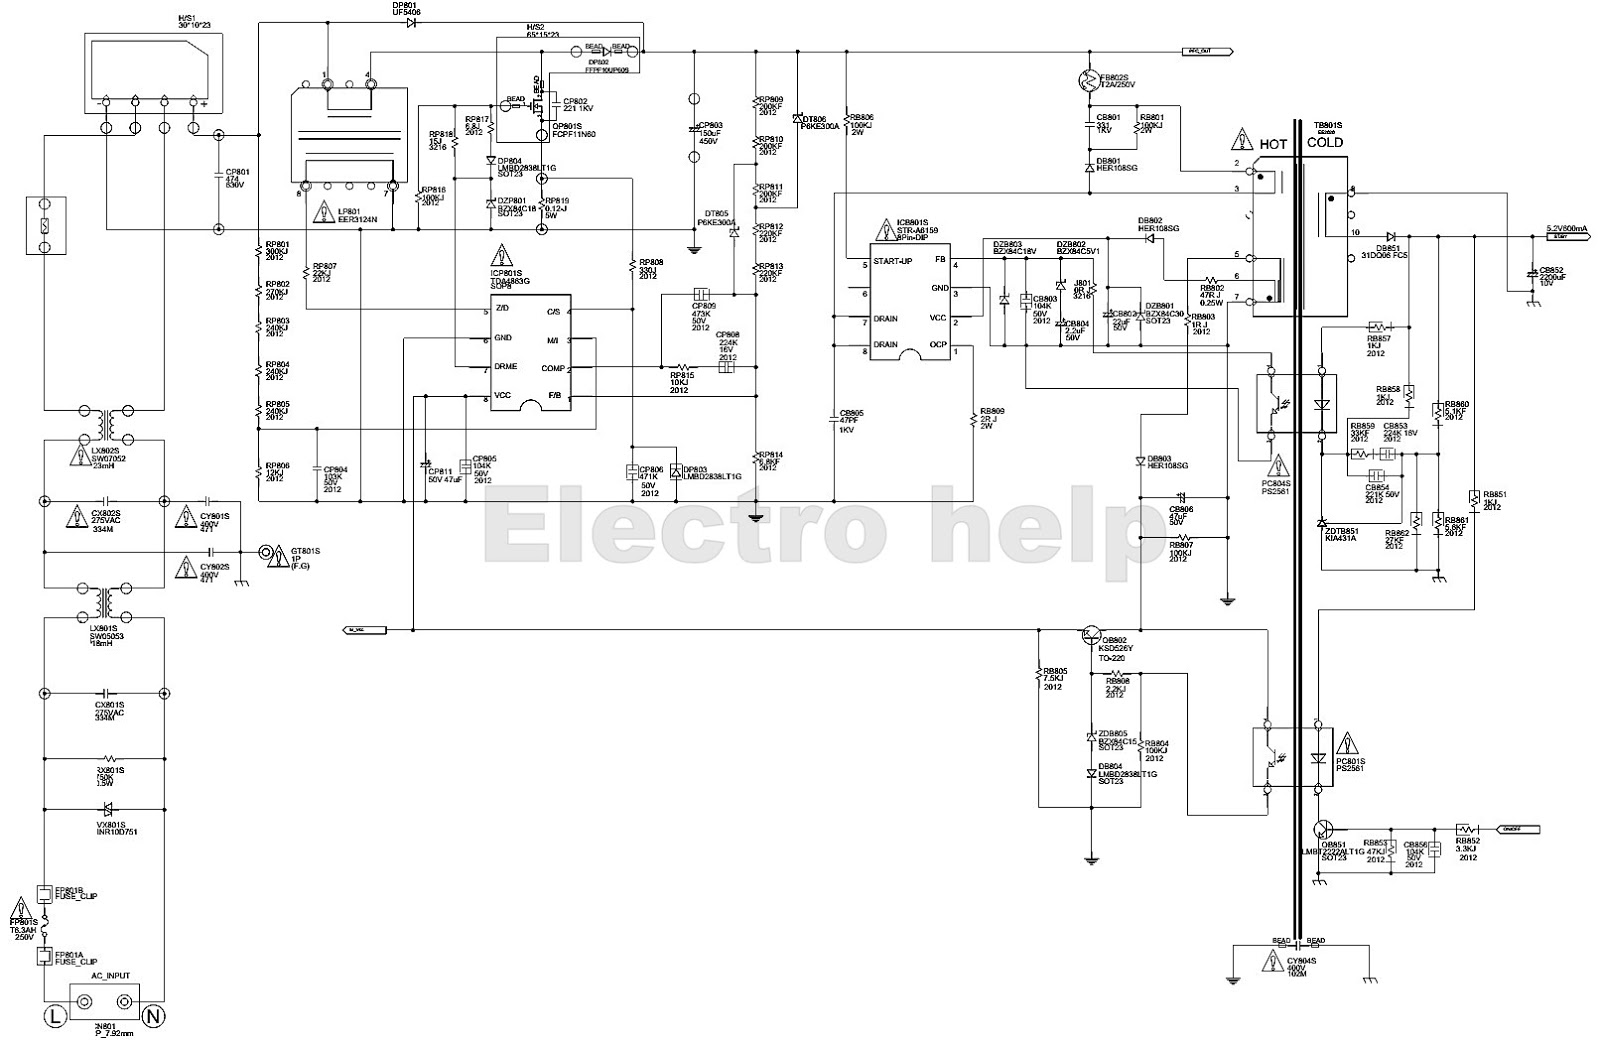 Samsung Bn44 Lcd Power Board Schematic